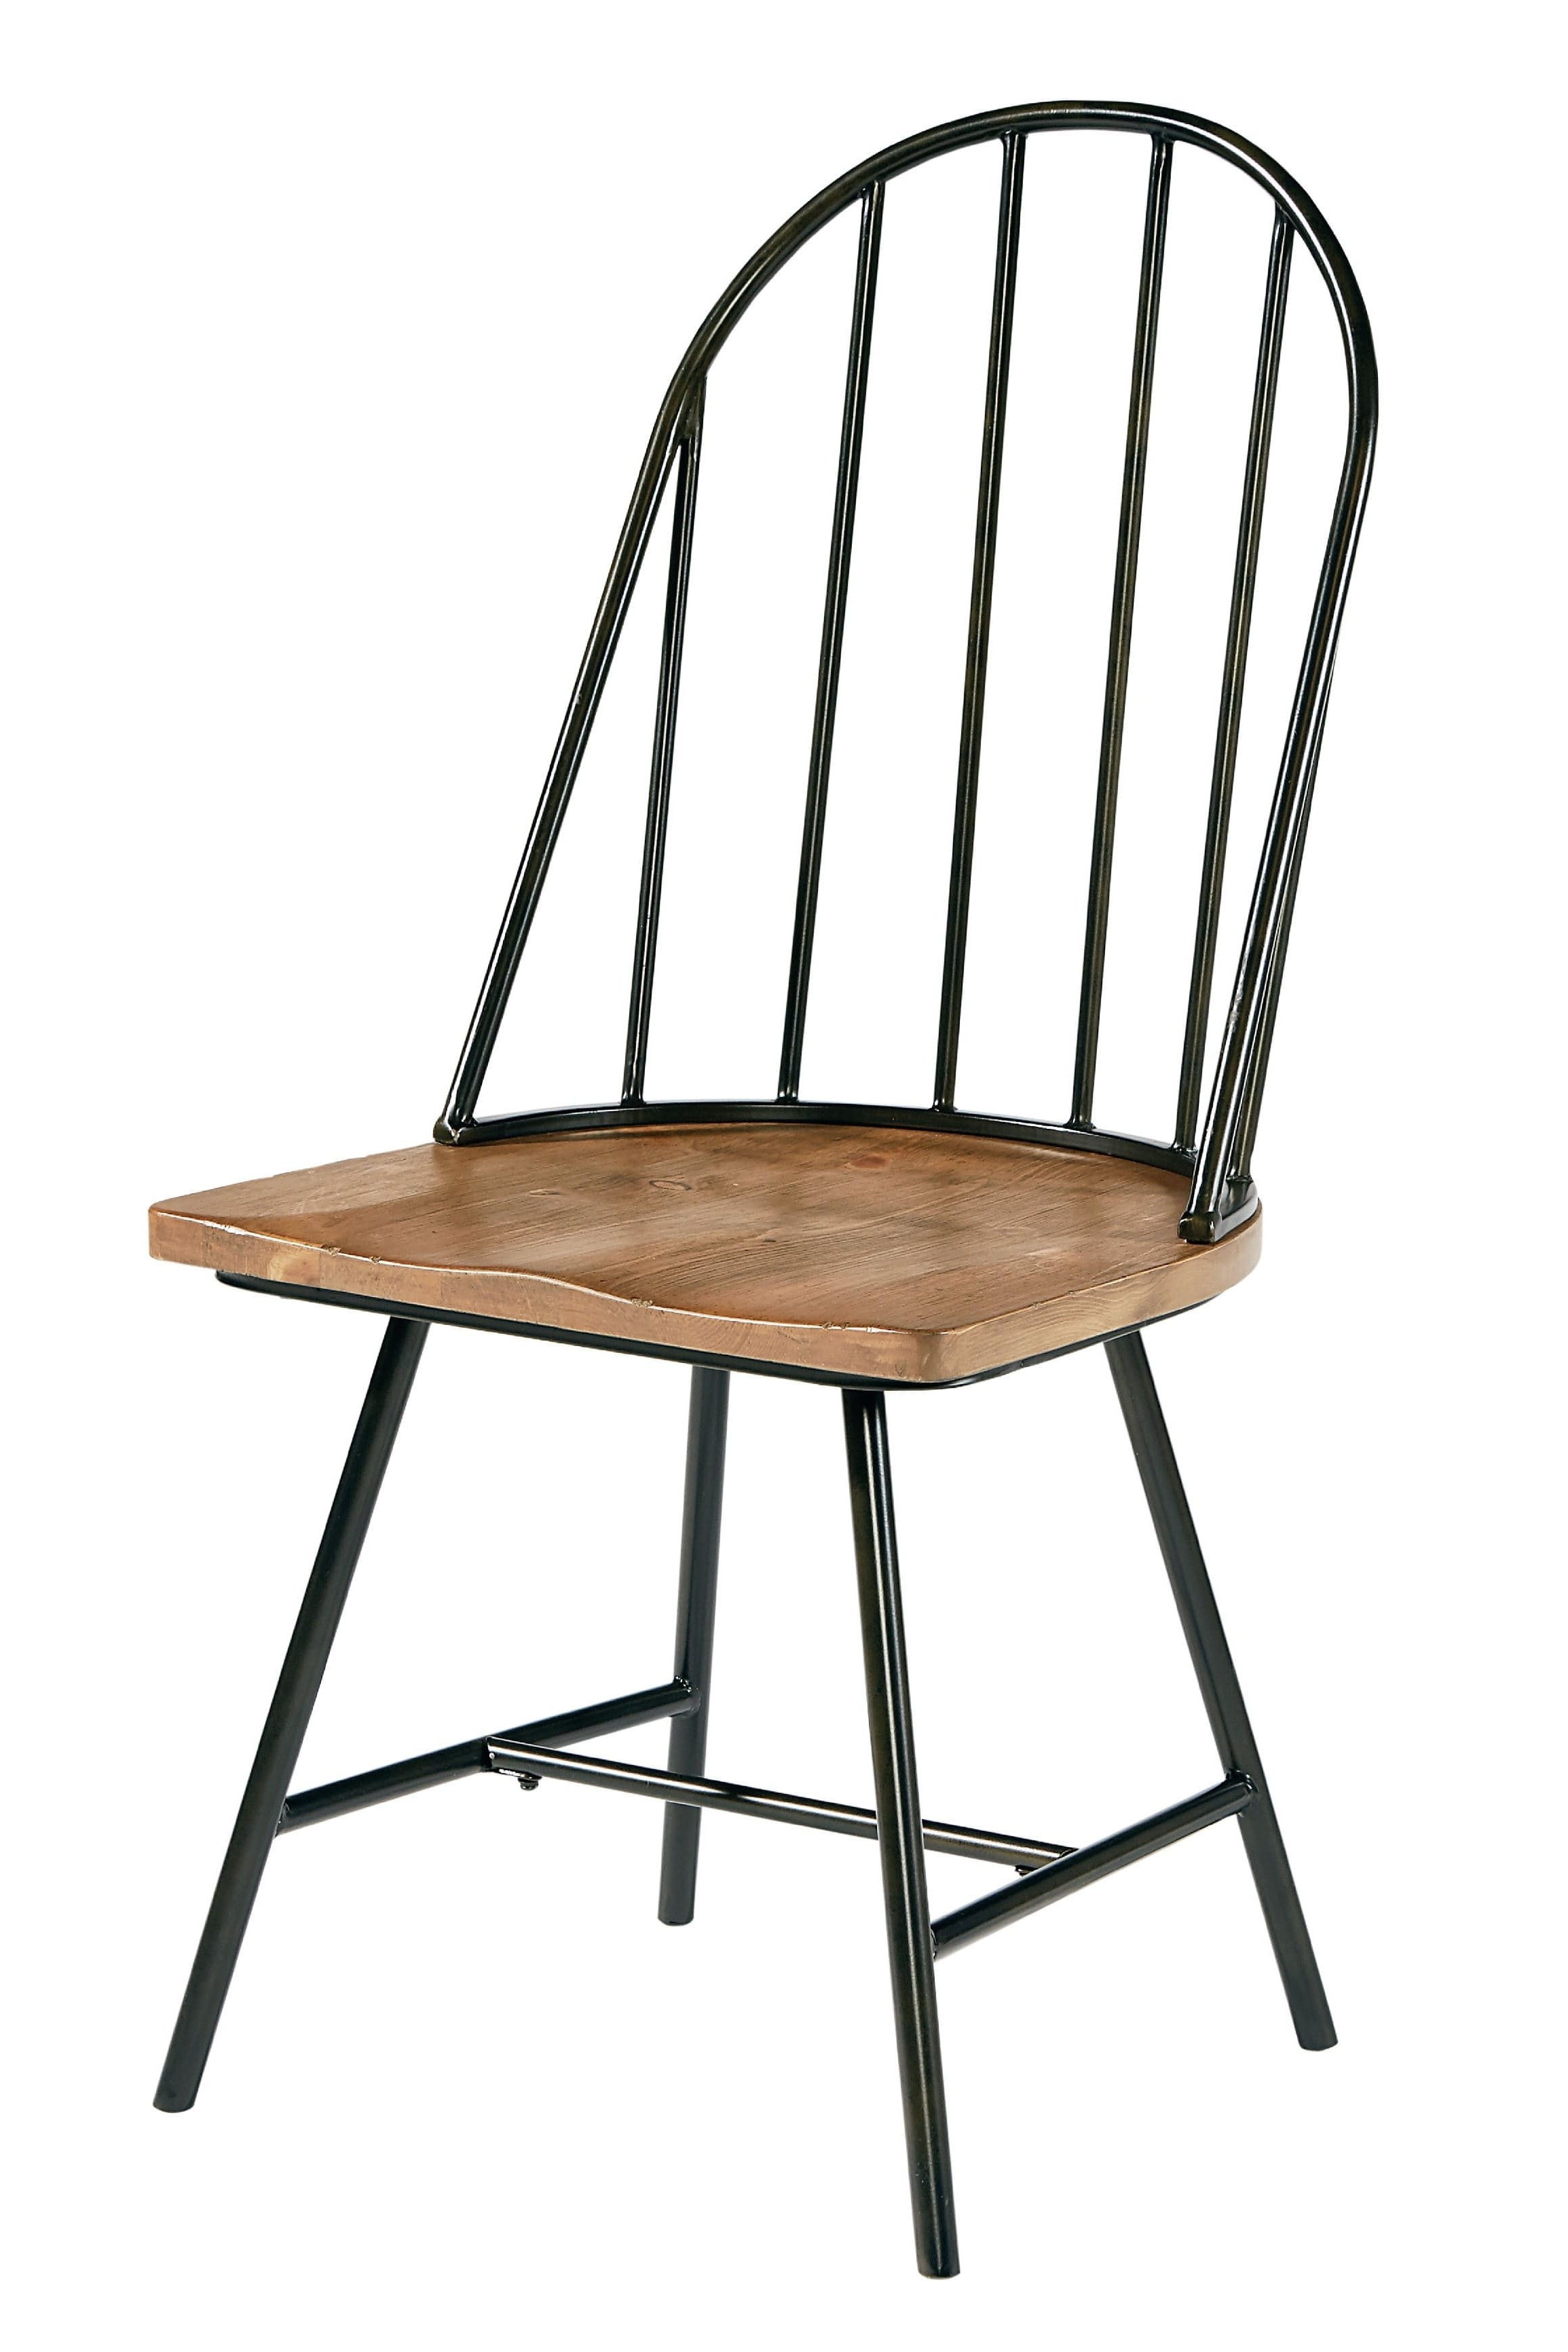 Magnolia Home Harper Patina Side Chairs Intended For Famous Magnolia Home – Windsor Metal And Wood Hoop Chair St: (View 10 of 20)